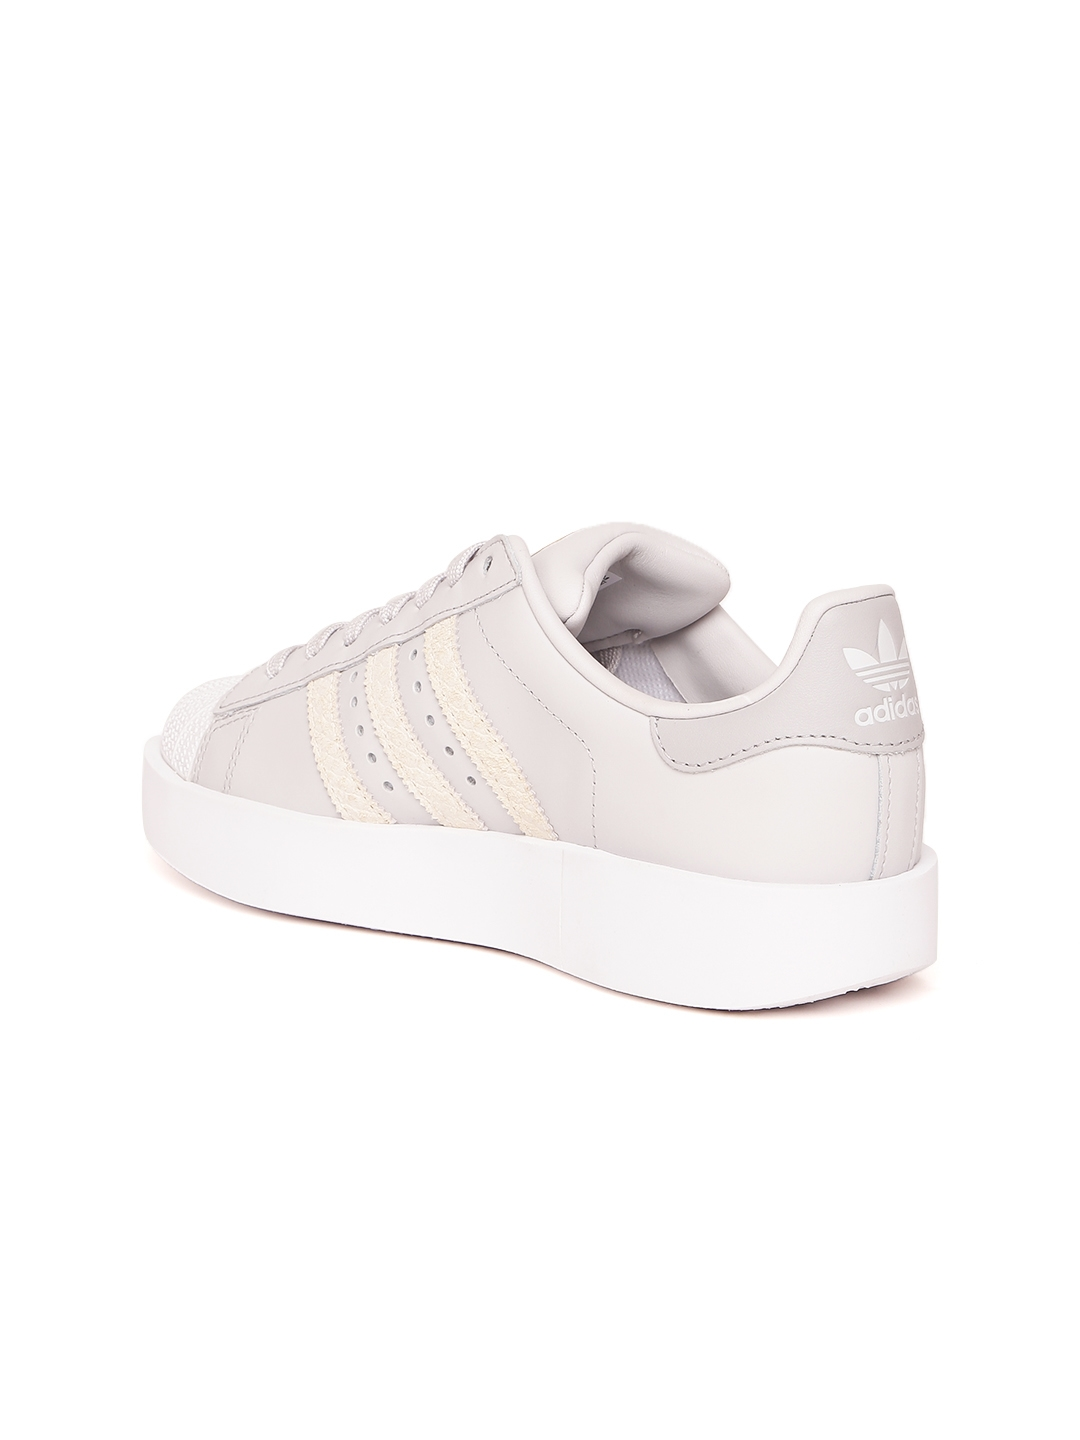 d5f5ba30a6a7 Buy ADIDAS Originals Women Grey SUPERSTAR BOLD Leather Sneakers ...